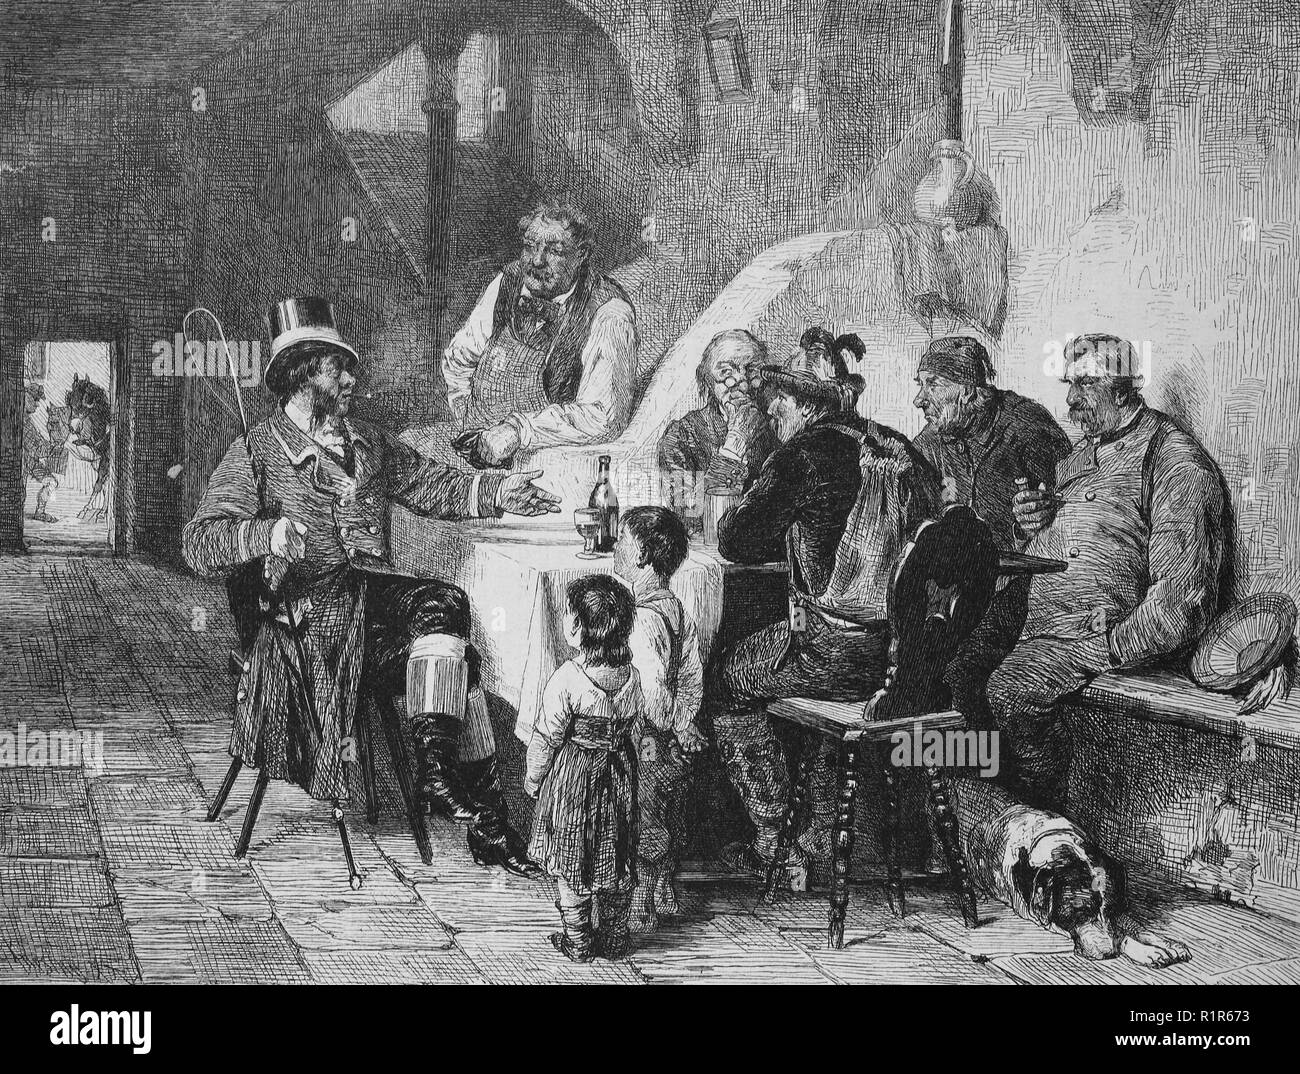 Digital improved reproduction, a dressed-up attire talks to the people in a restaurant, original print from the year 1880 - Stock Image